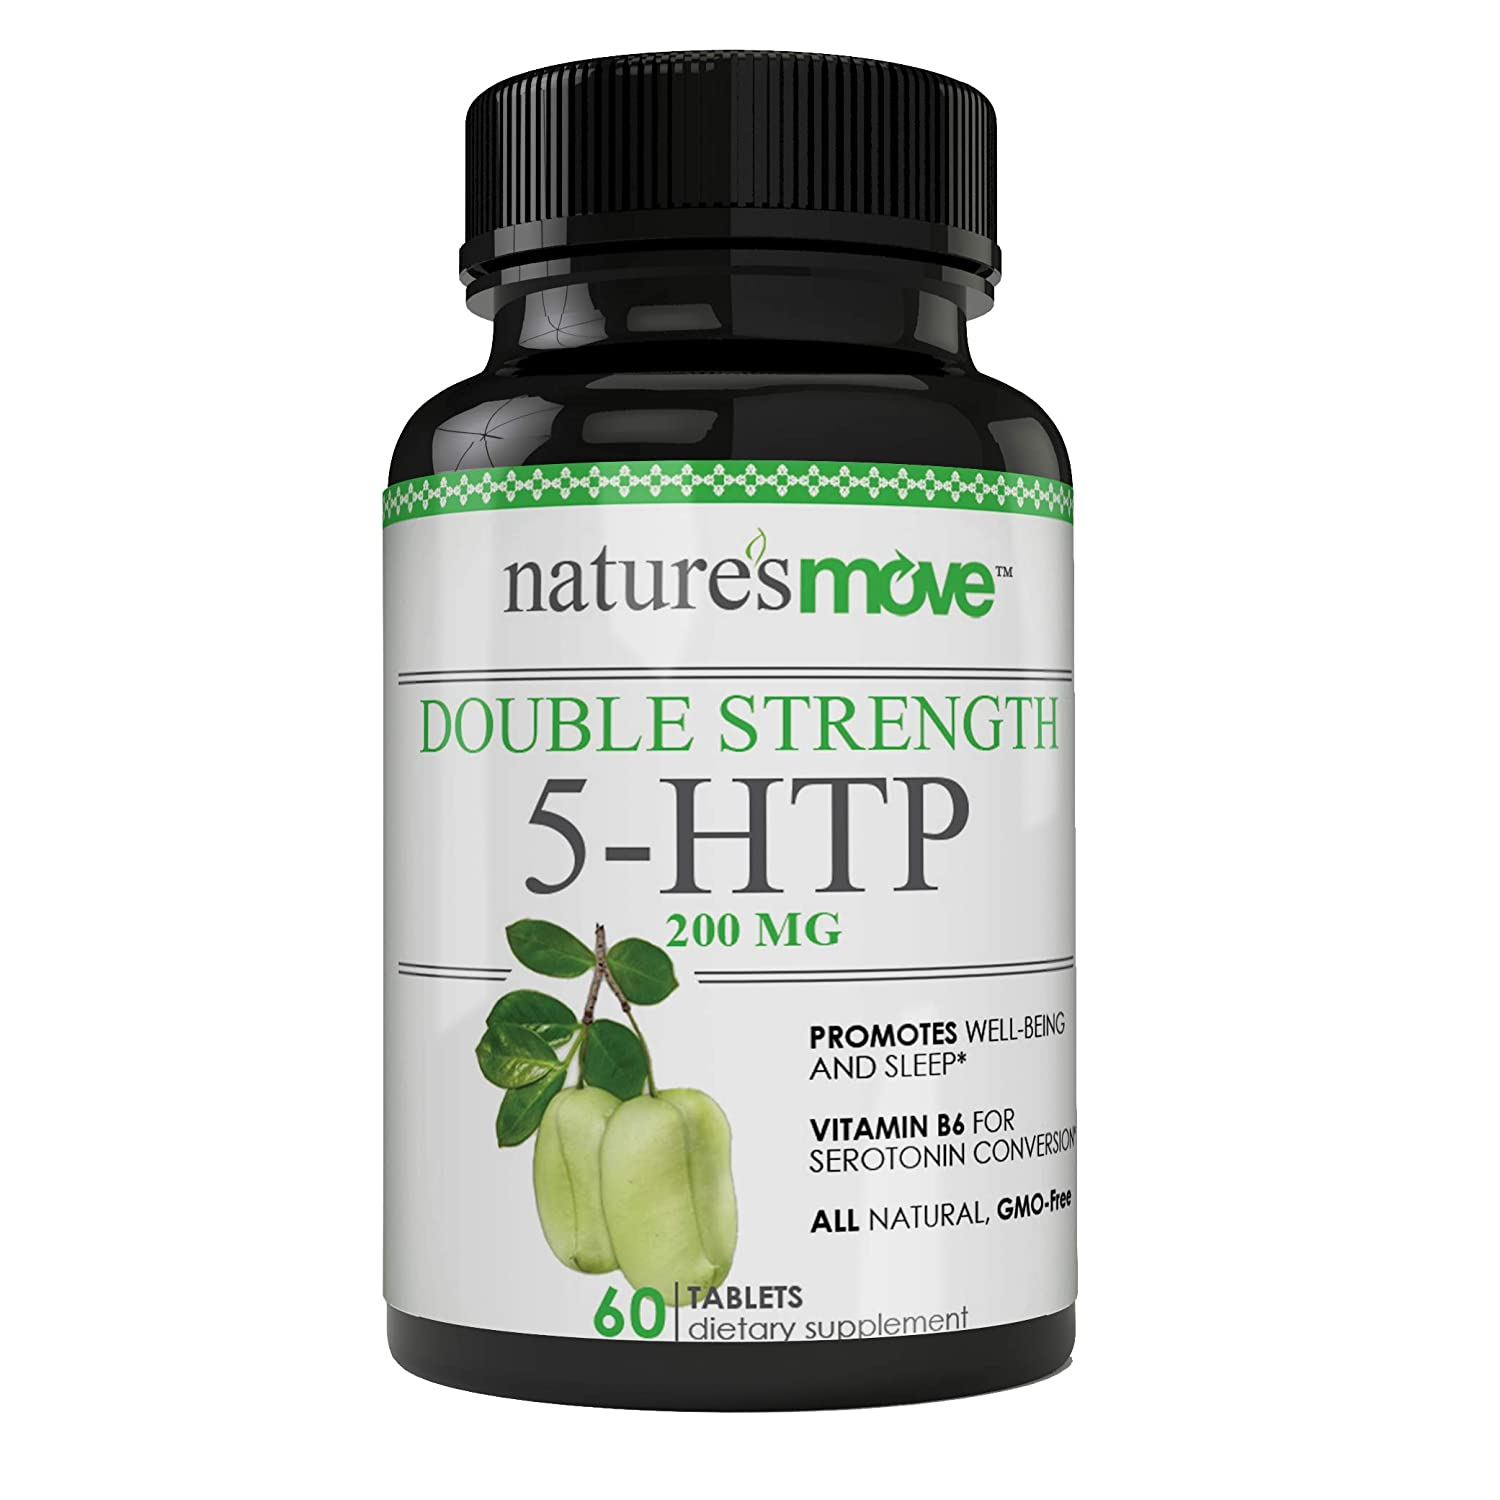 Nervous System Support, Premium Grade 5 HTP is A Natural Appetite Suppressant That Helps Improve Your Overall Mood Relaxation and A Restful Sleep top 5 natural sleep supplements - 71Uhpw uYWL - Top 5 Natural sleep supplements – reviews and buying guide